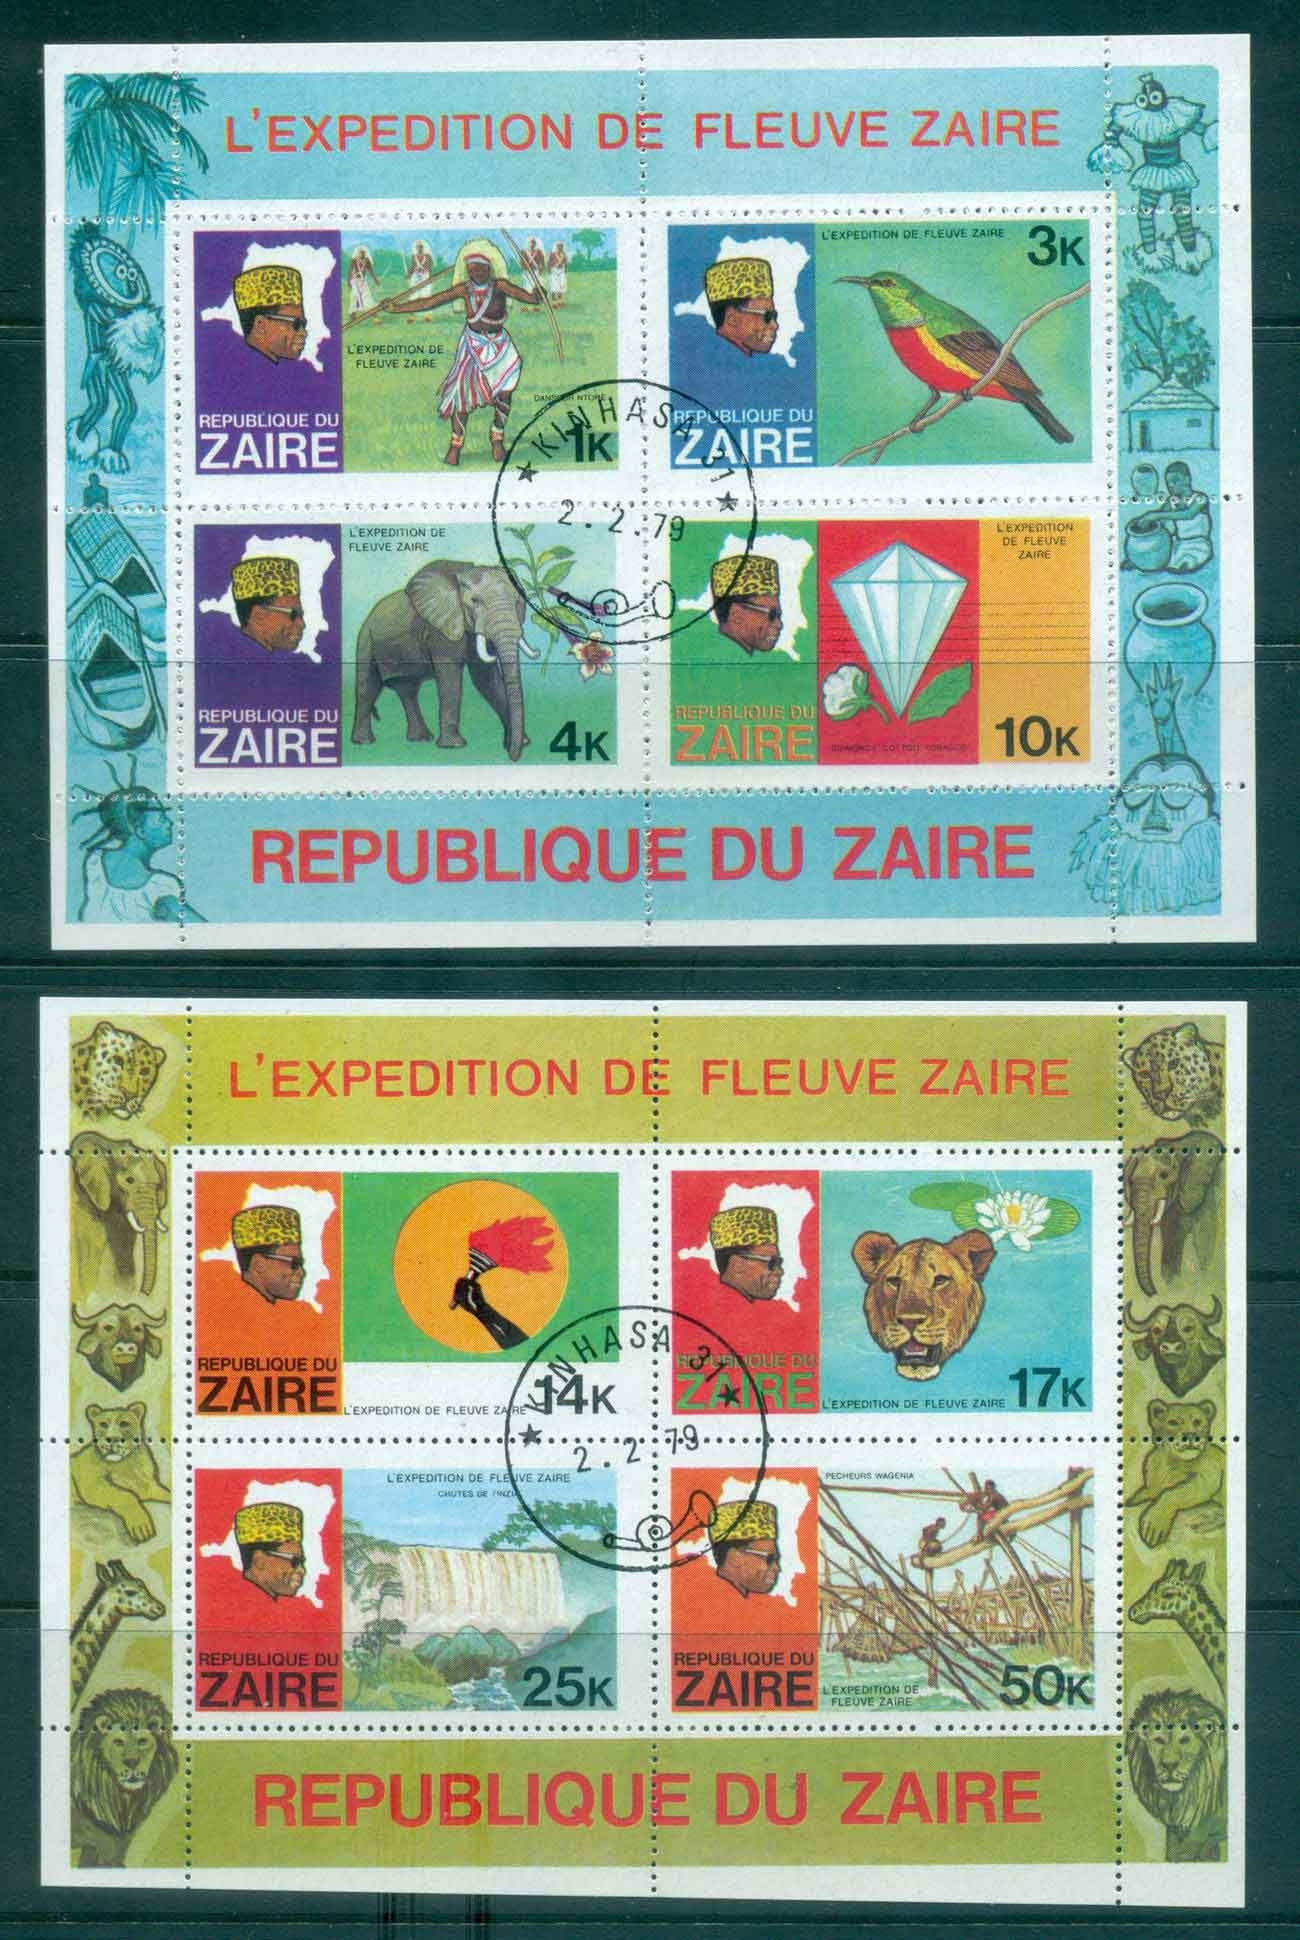 Zaire 1979 Congo River Expedition 2x MS CTO Lot46298